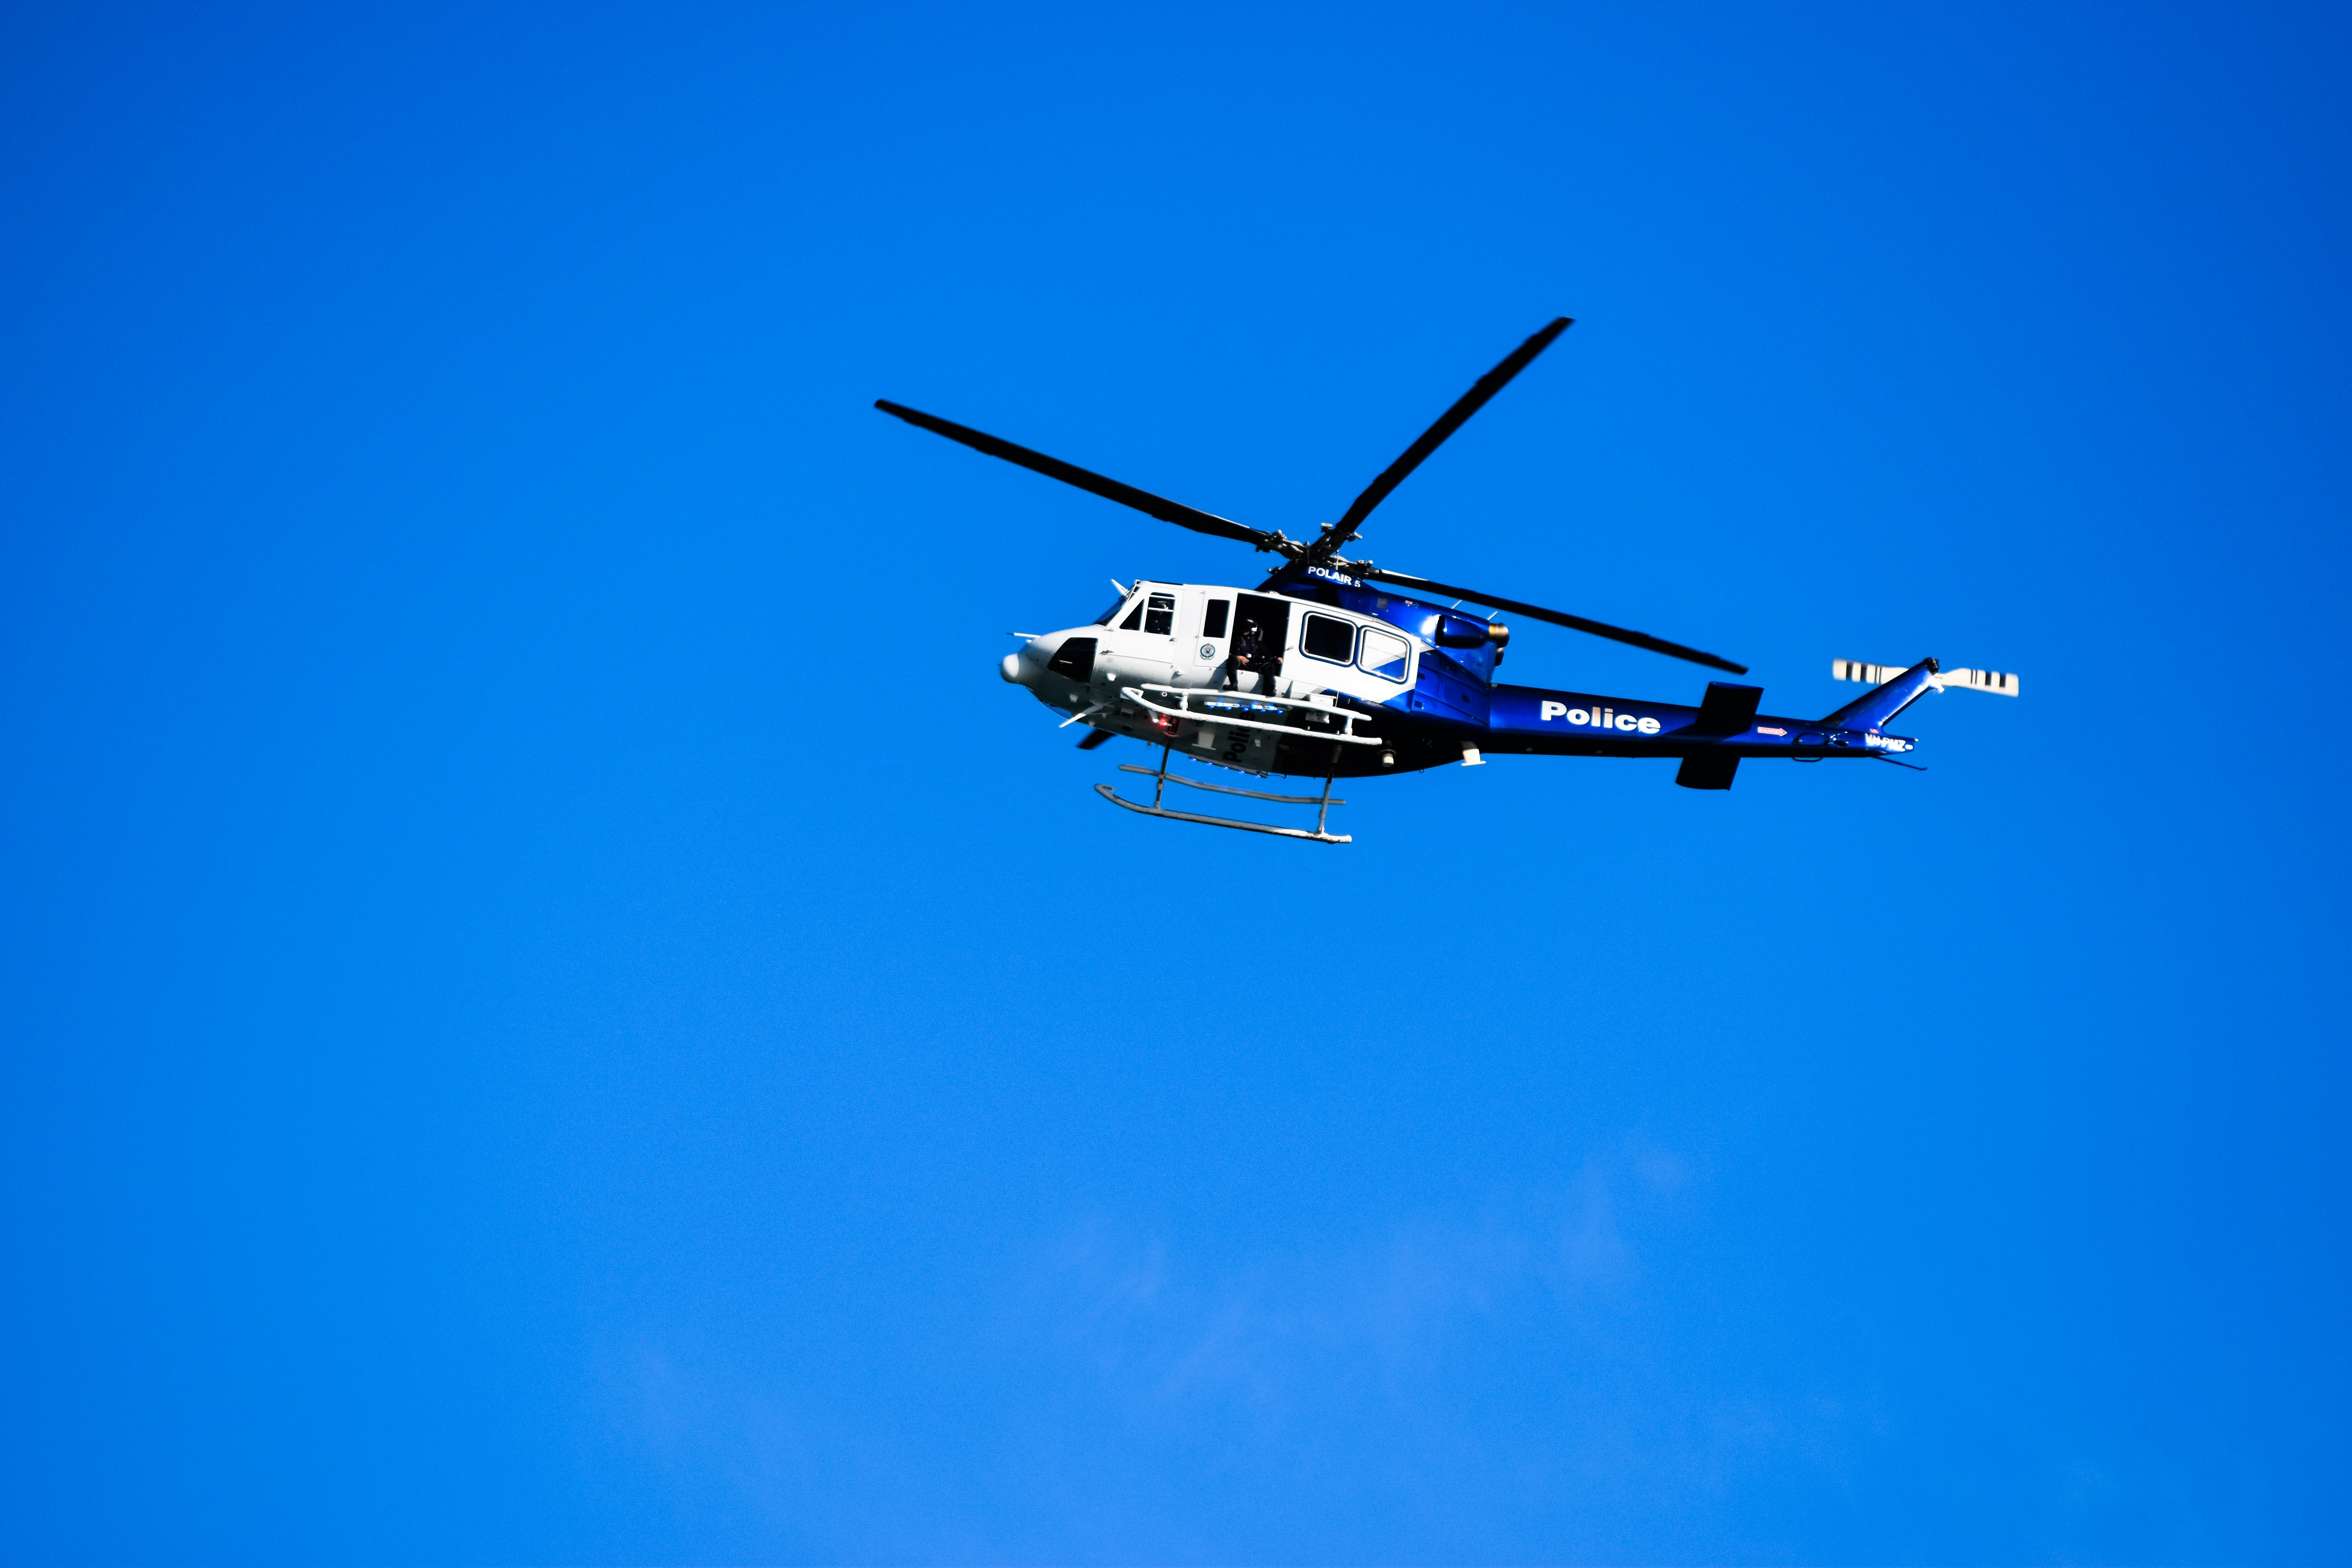 white and blue Police chopper flying in the sky